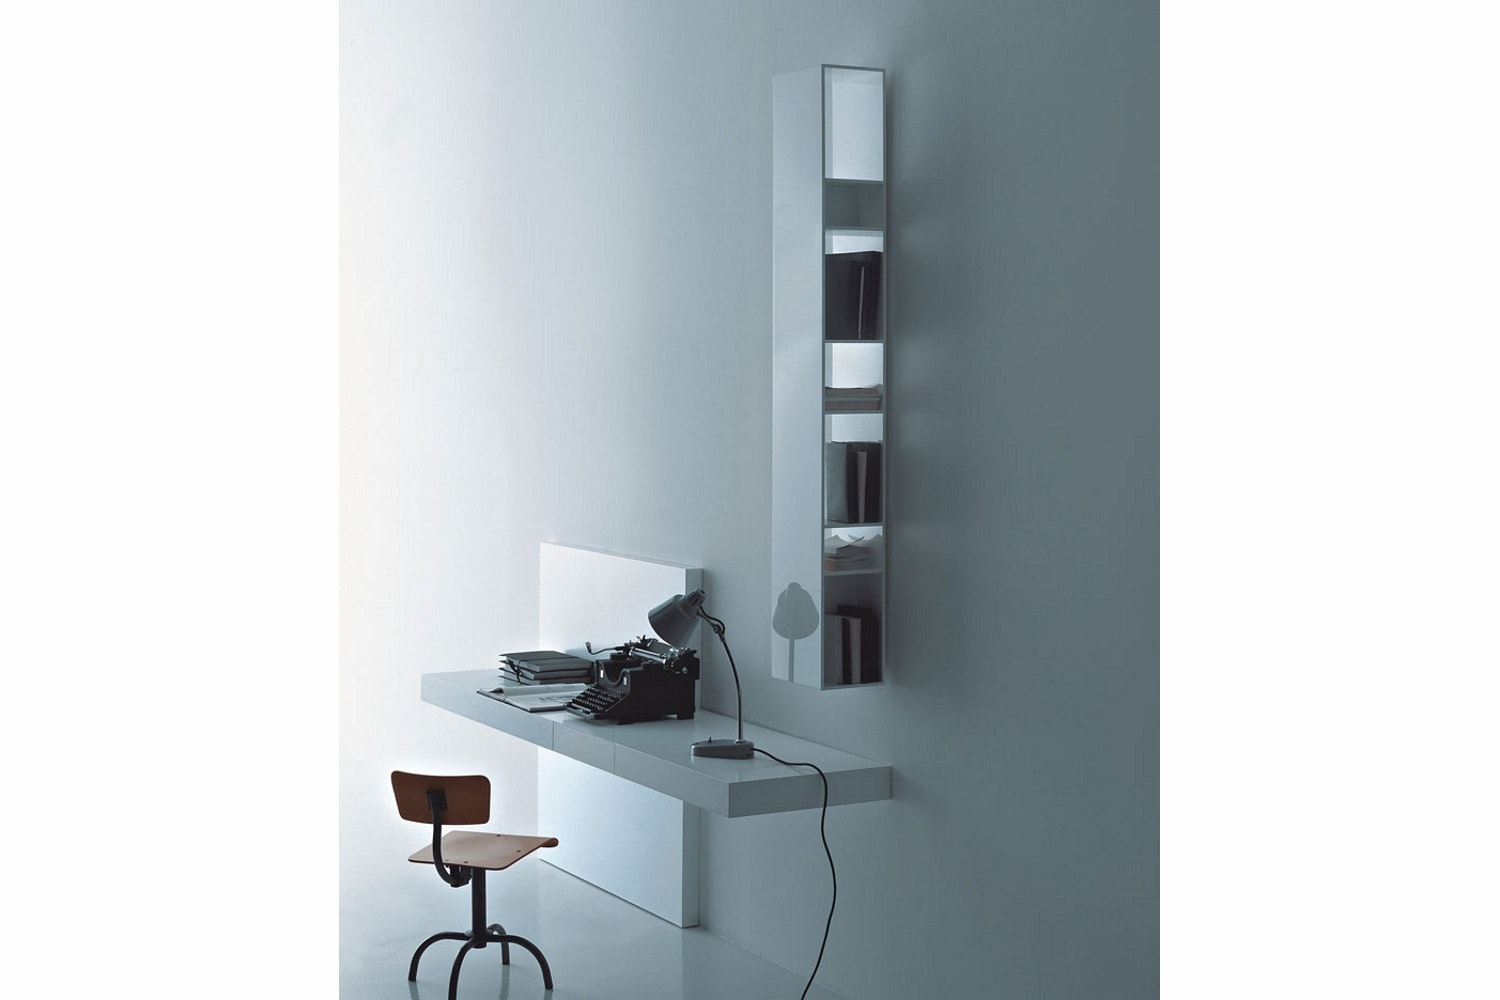 Scrittoio Modern Desk by Piero Lissoni for Porro